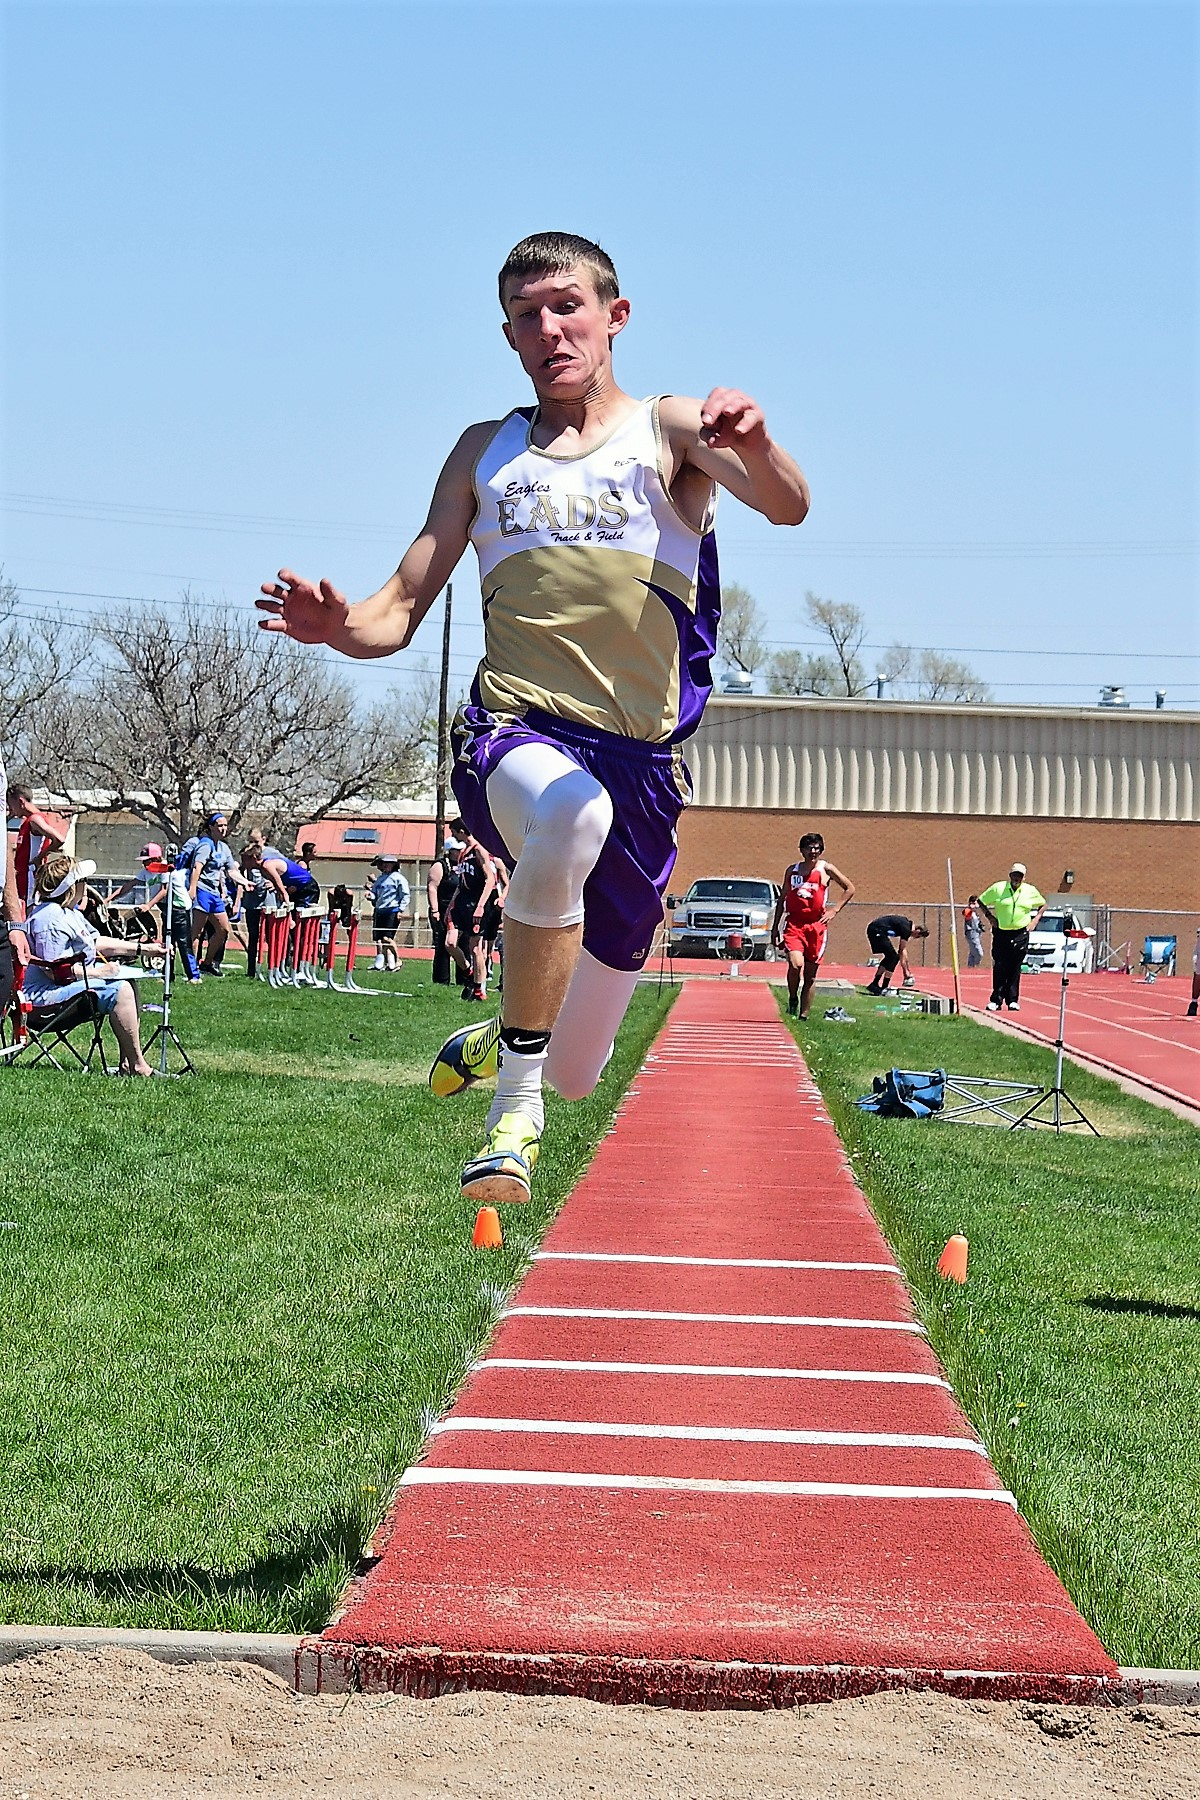 Zach Haase won the Triple Jump in a 43-00.75 performance, a new Eads school record (Photo credit: Bob Schecter)